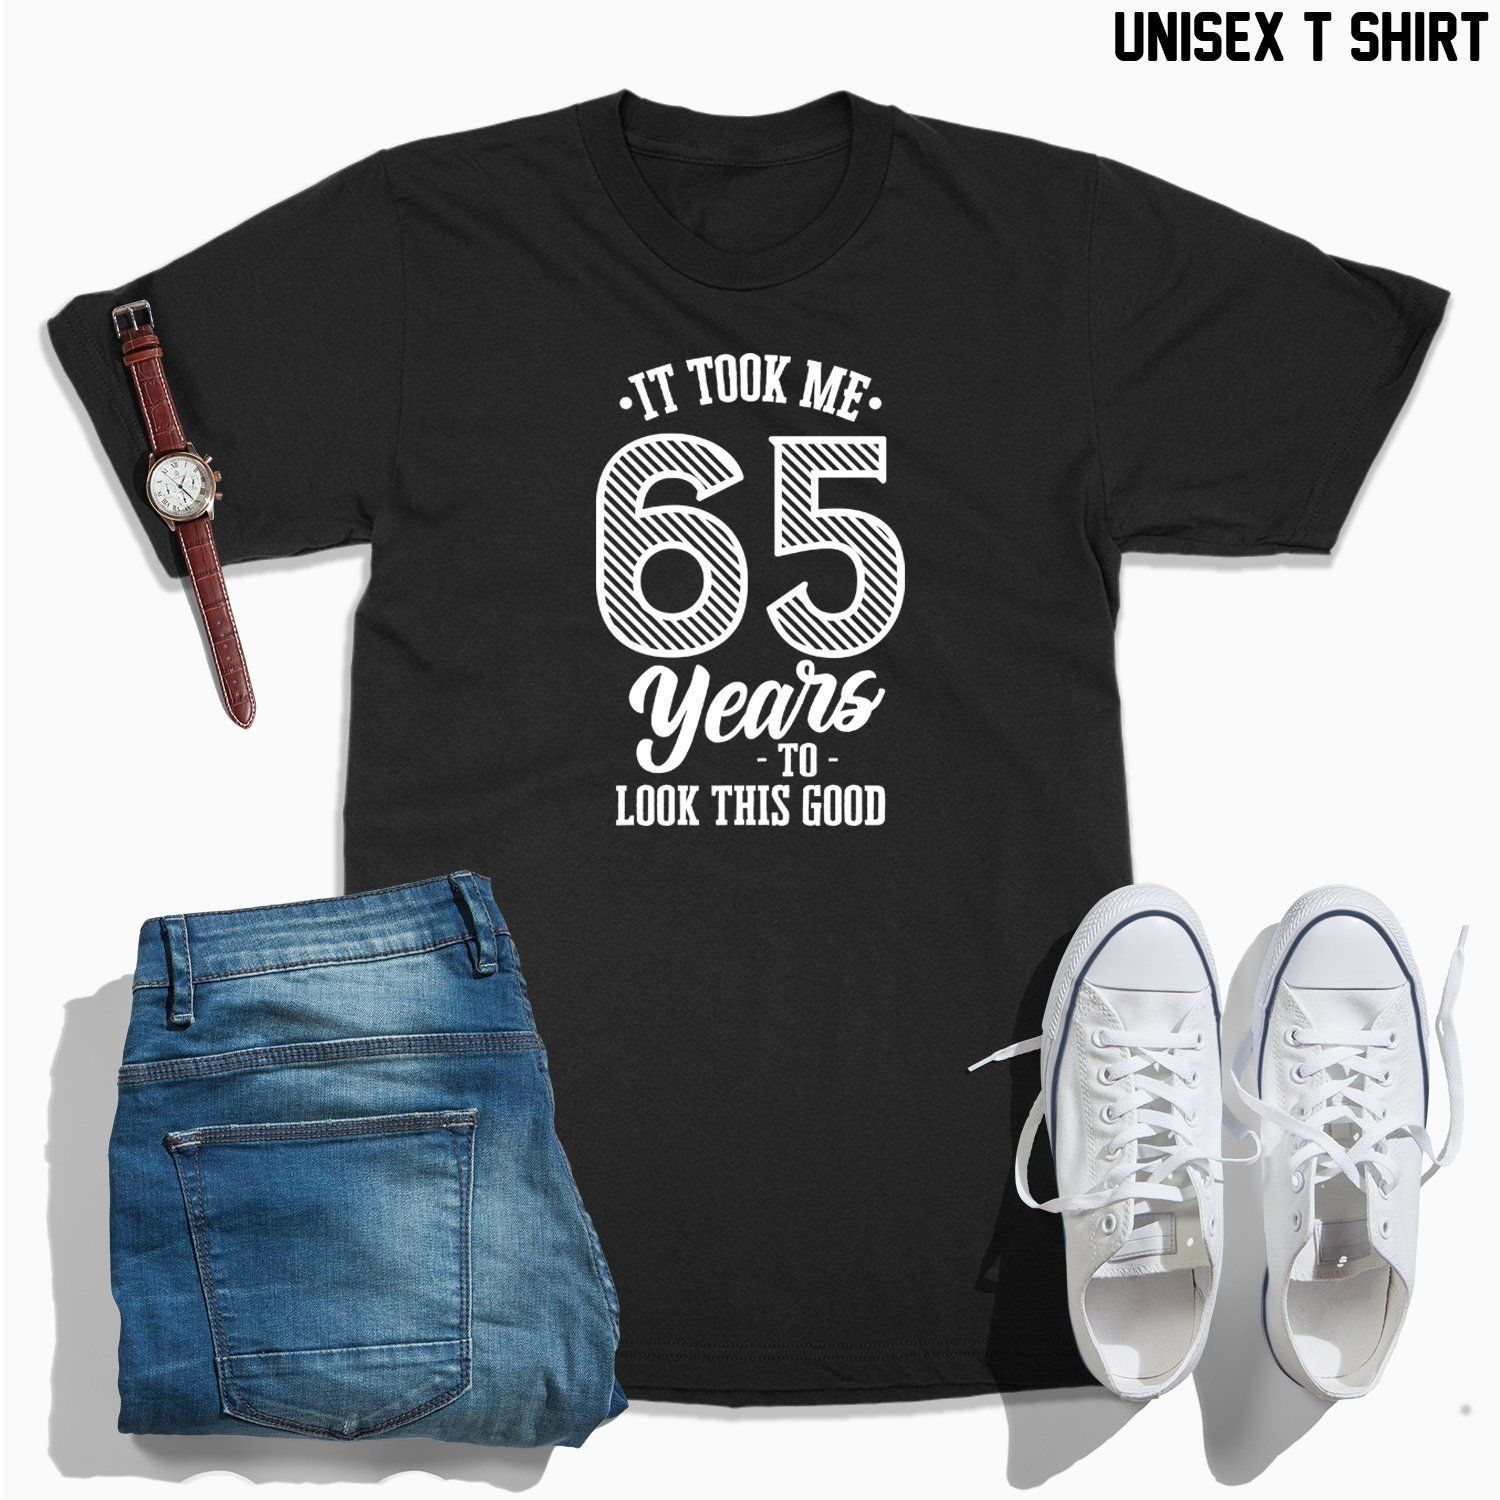 It took me 65 years to look this good shirt, 65th birthday gift, 65th birthday shirt, 1954 birthday shirt, birthday gift for husband, gpa #papashirts